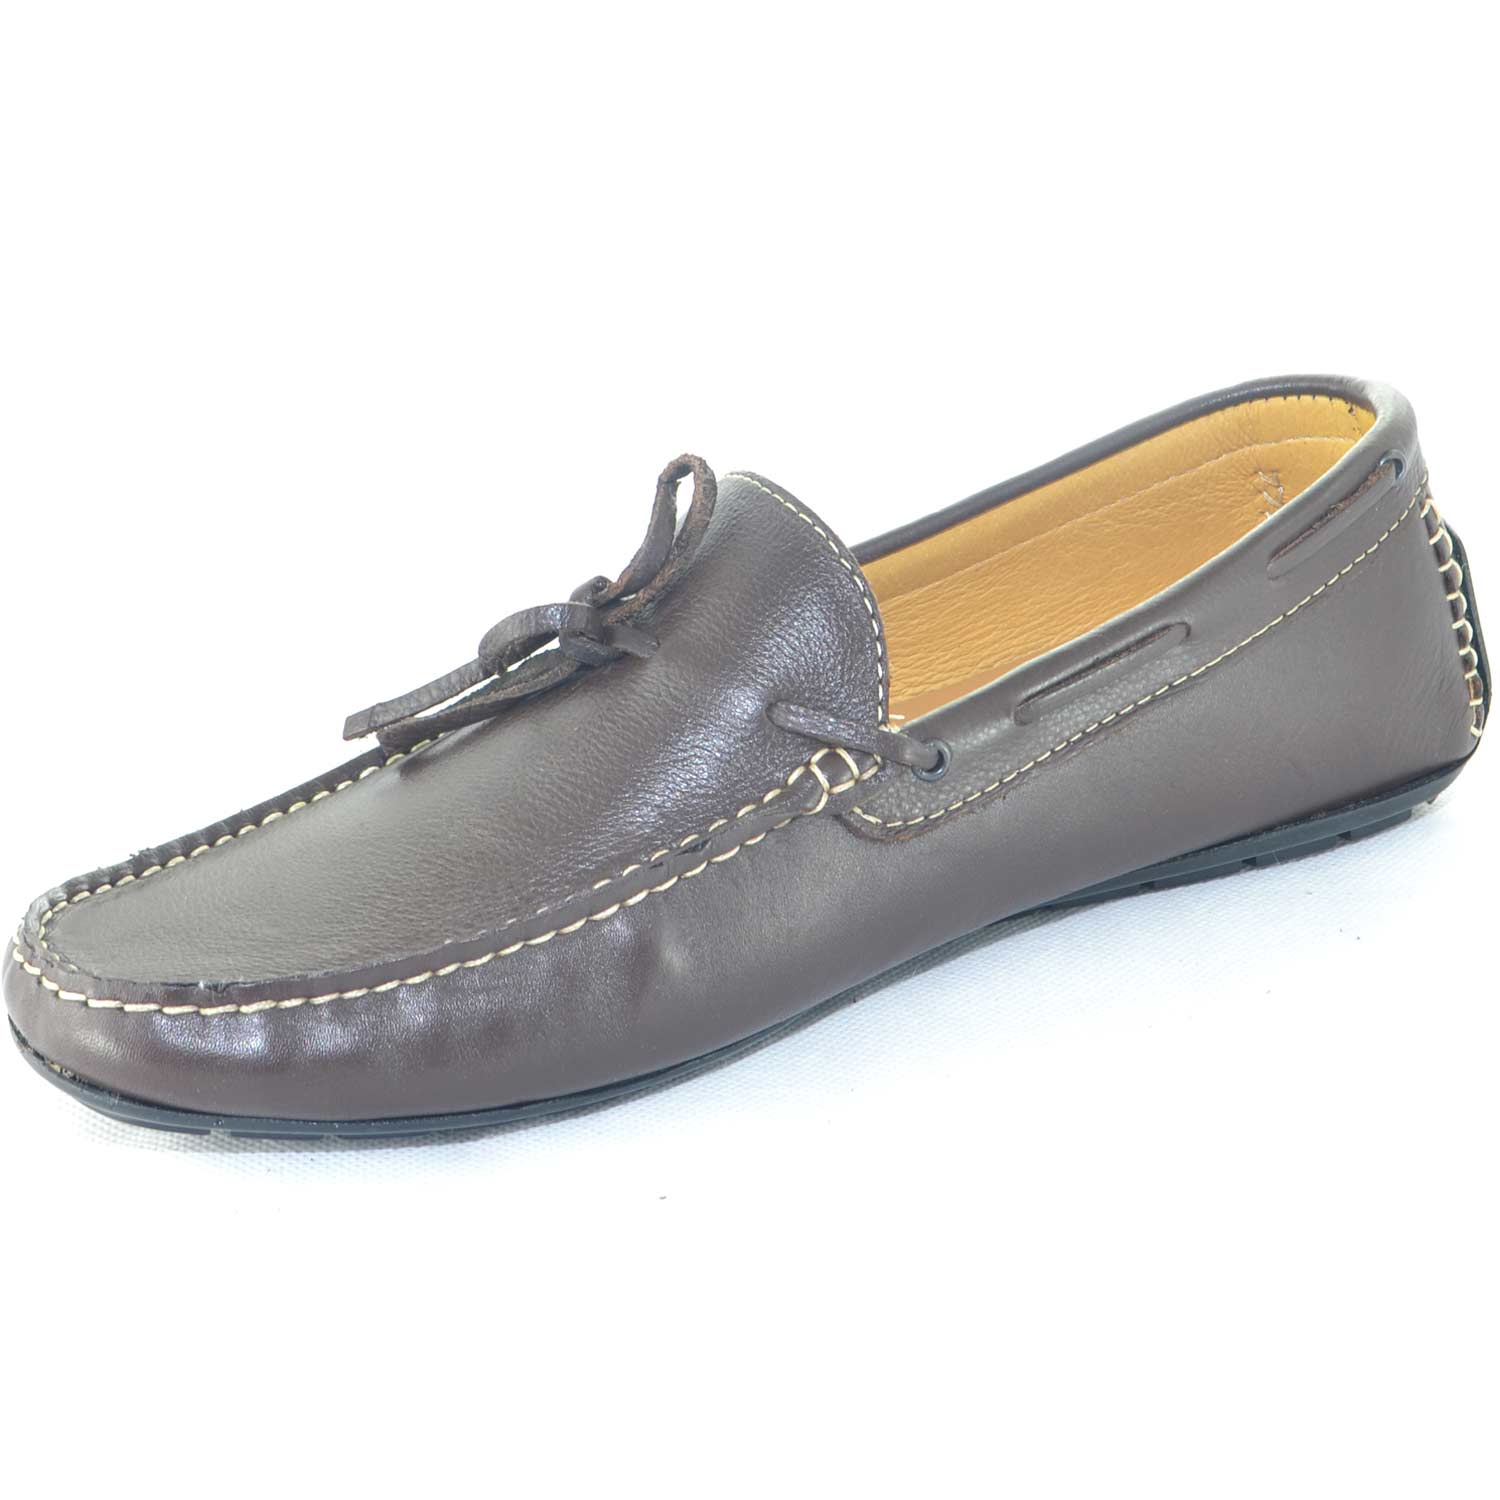 Scarpe uomo mocassino interland marrone da barca modello car shoes slip on made in italy comfort vera pelle moda estiva	.